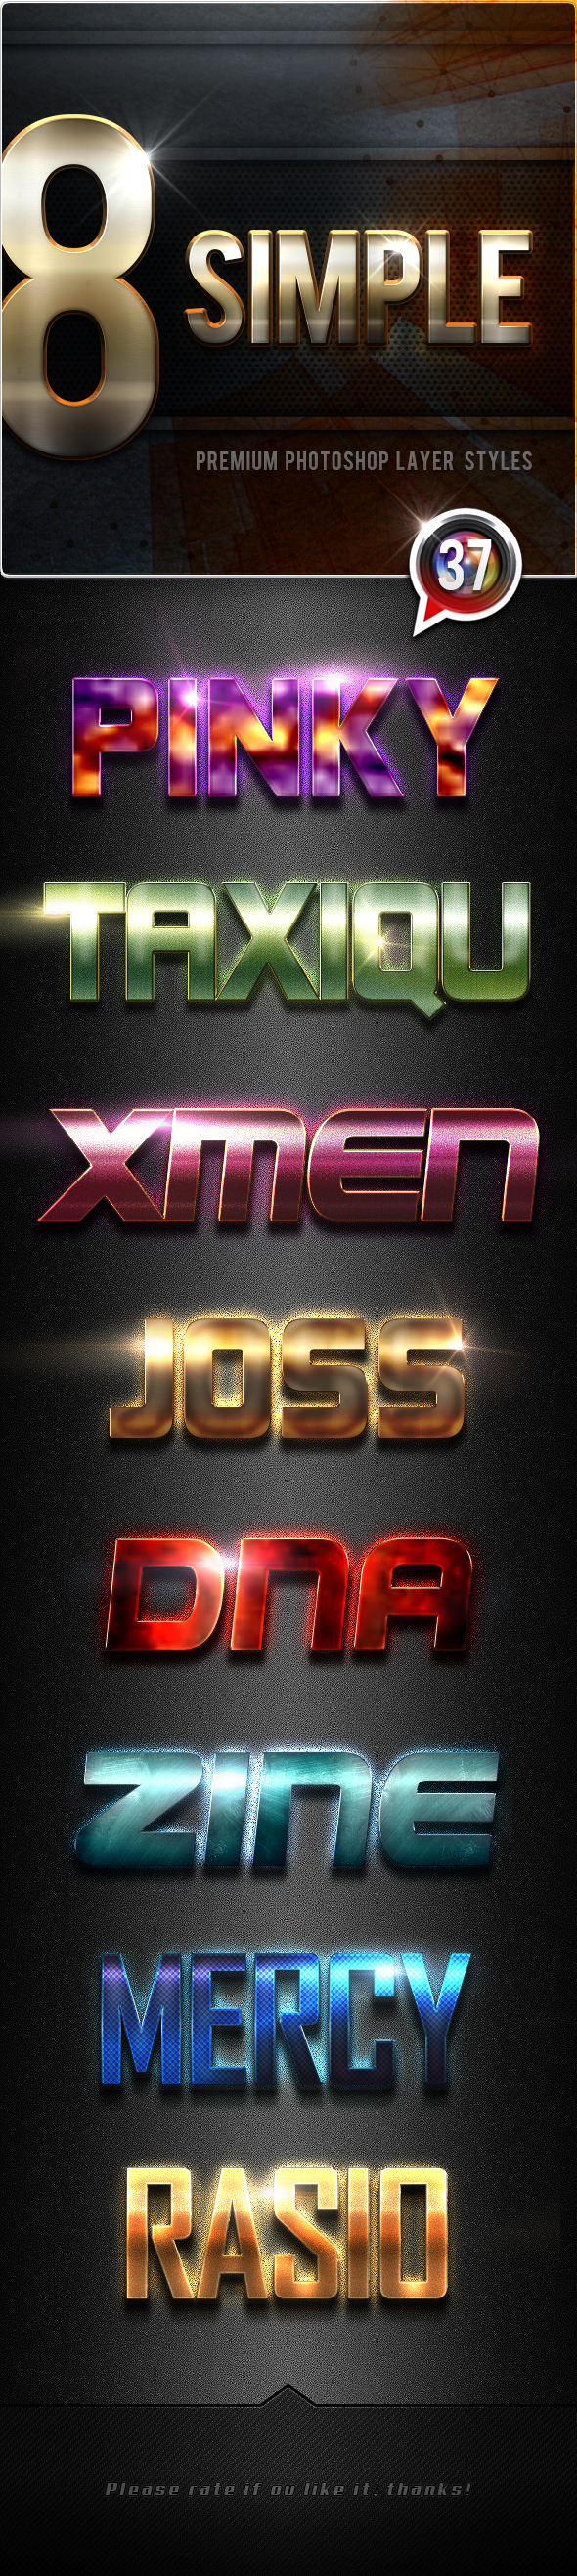 8 Simple Photoshop Text Effects Vol.37 - Text Effects Styles